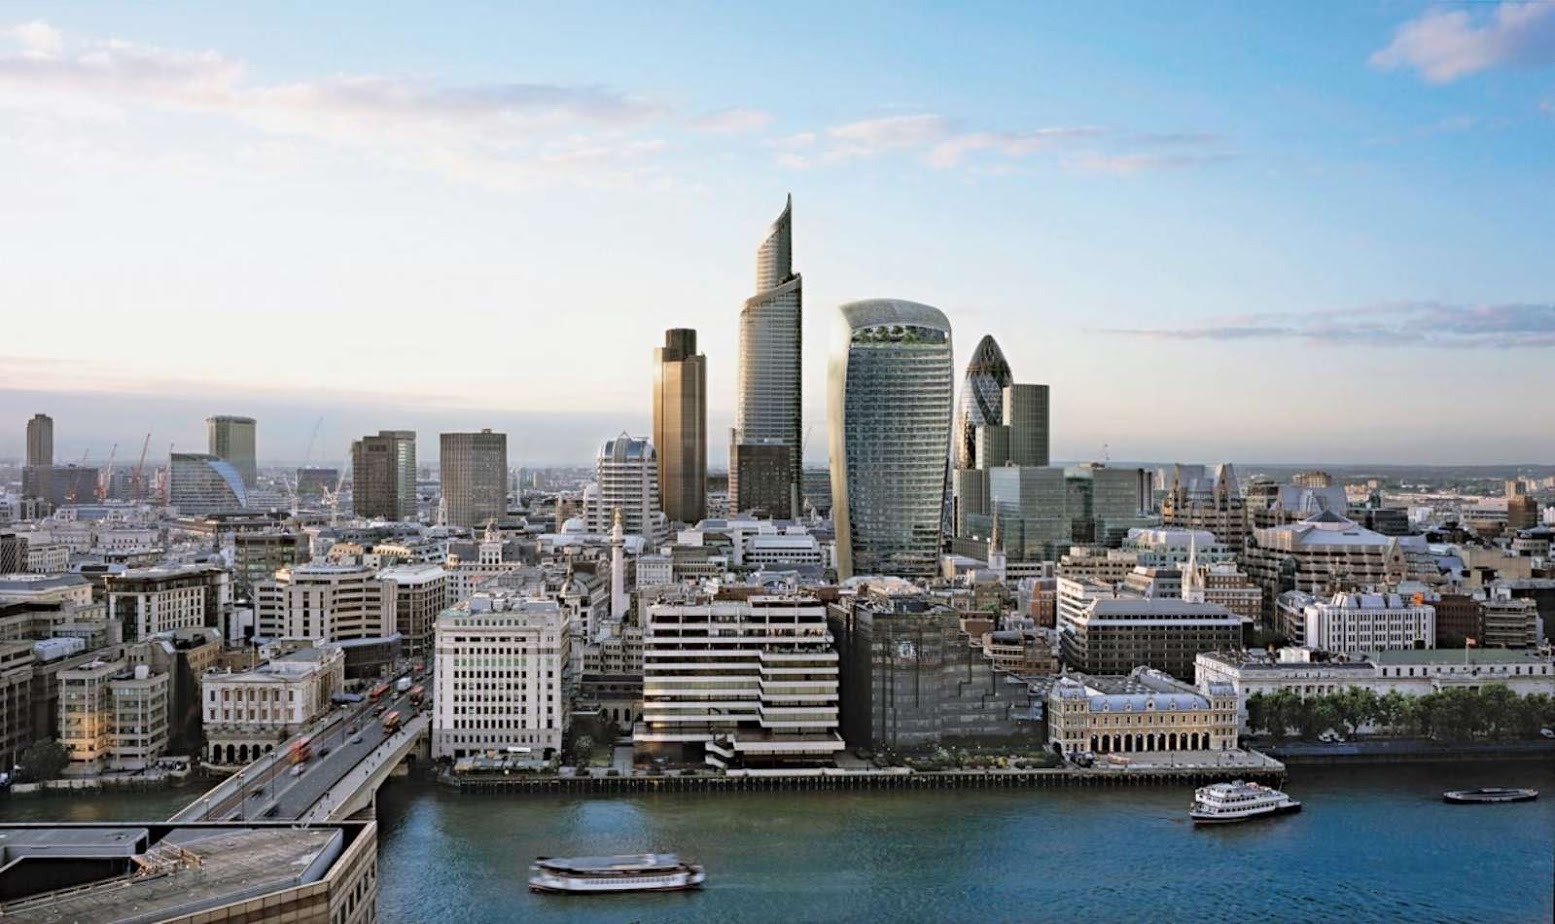 Londra, Regno Unito: [20 FENCHURCH STREET BY RAFAEL VIÑOLY ARCHITECTS]